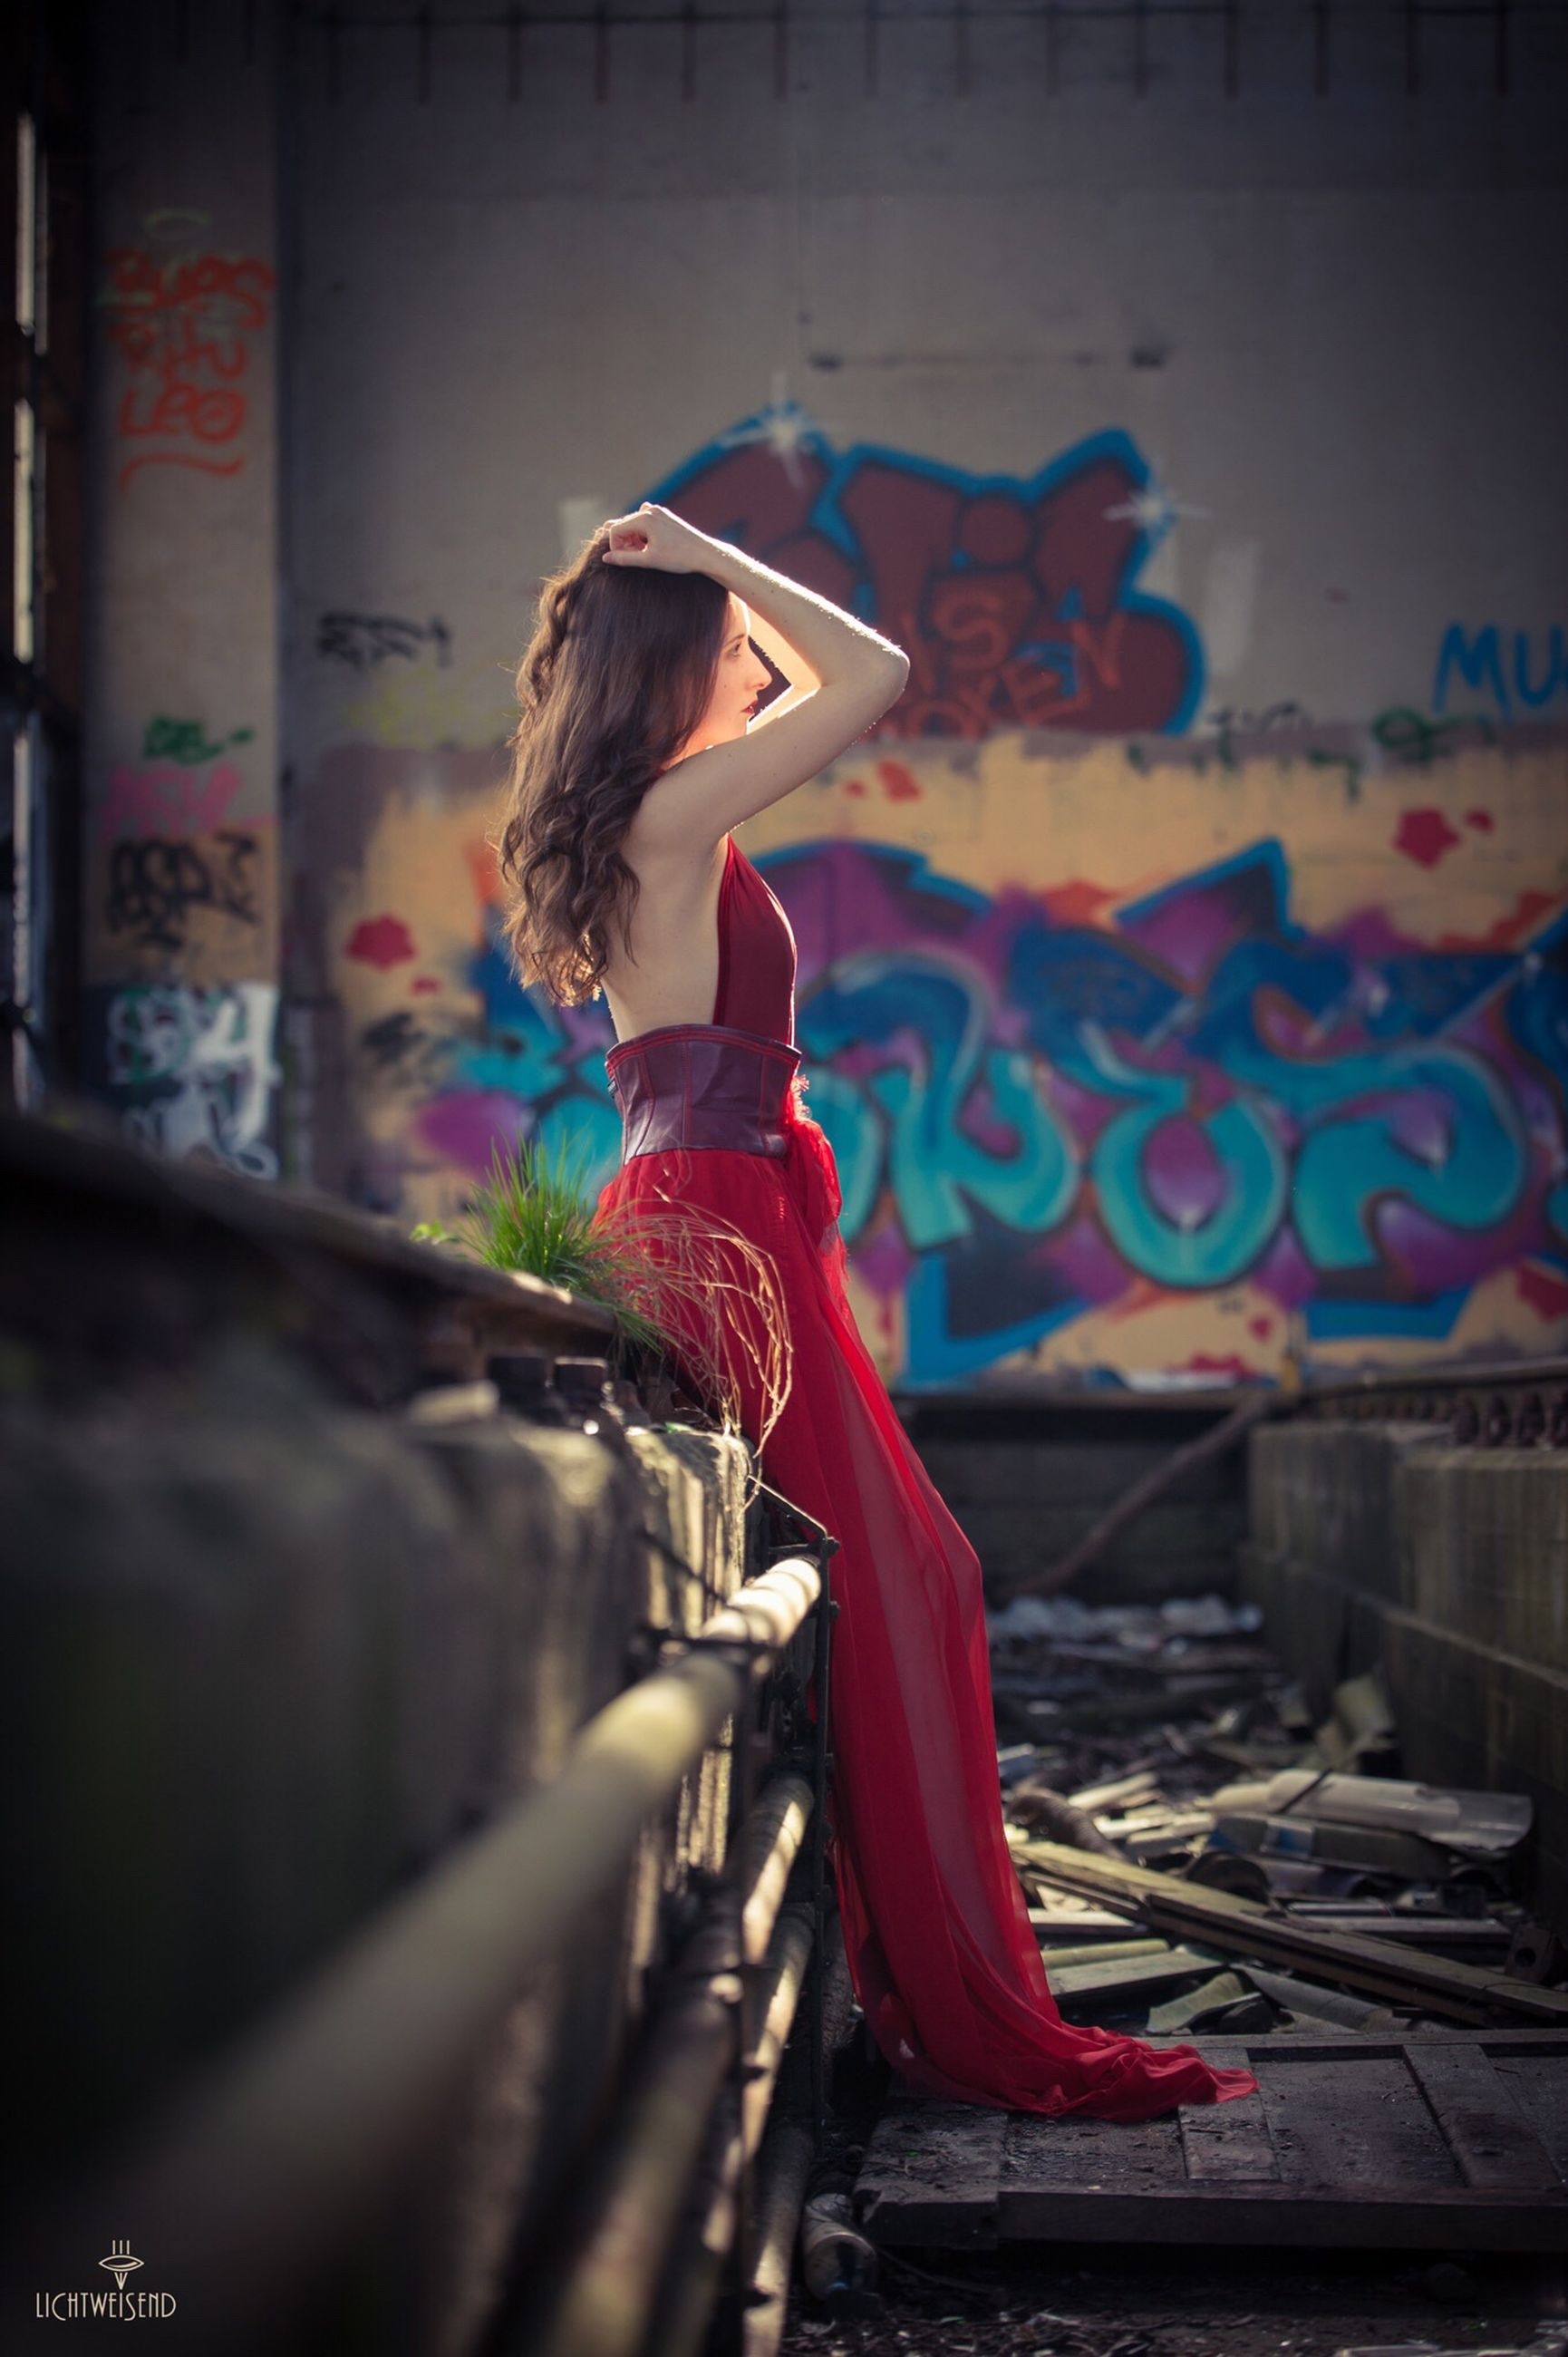 full length, lifestyles, night, men, street, walking, leisure activity, built structure, architecture, rear view, red, casual clothing, graffiti, blurred motion, indoors, person, building exterior, illuminated